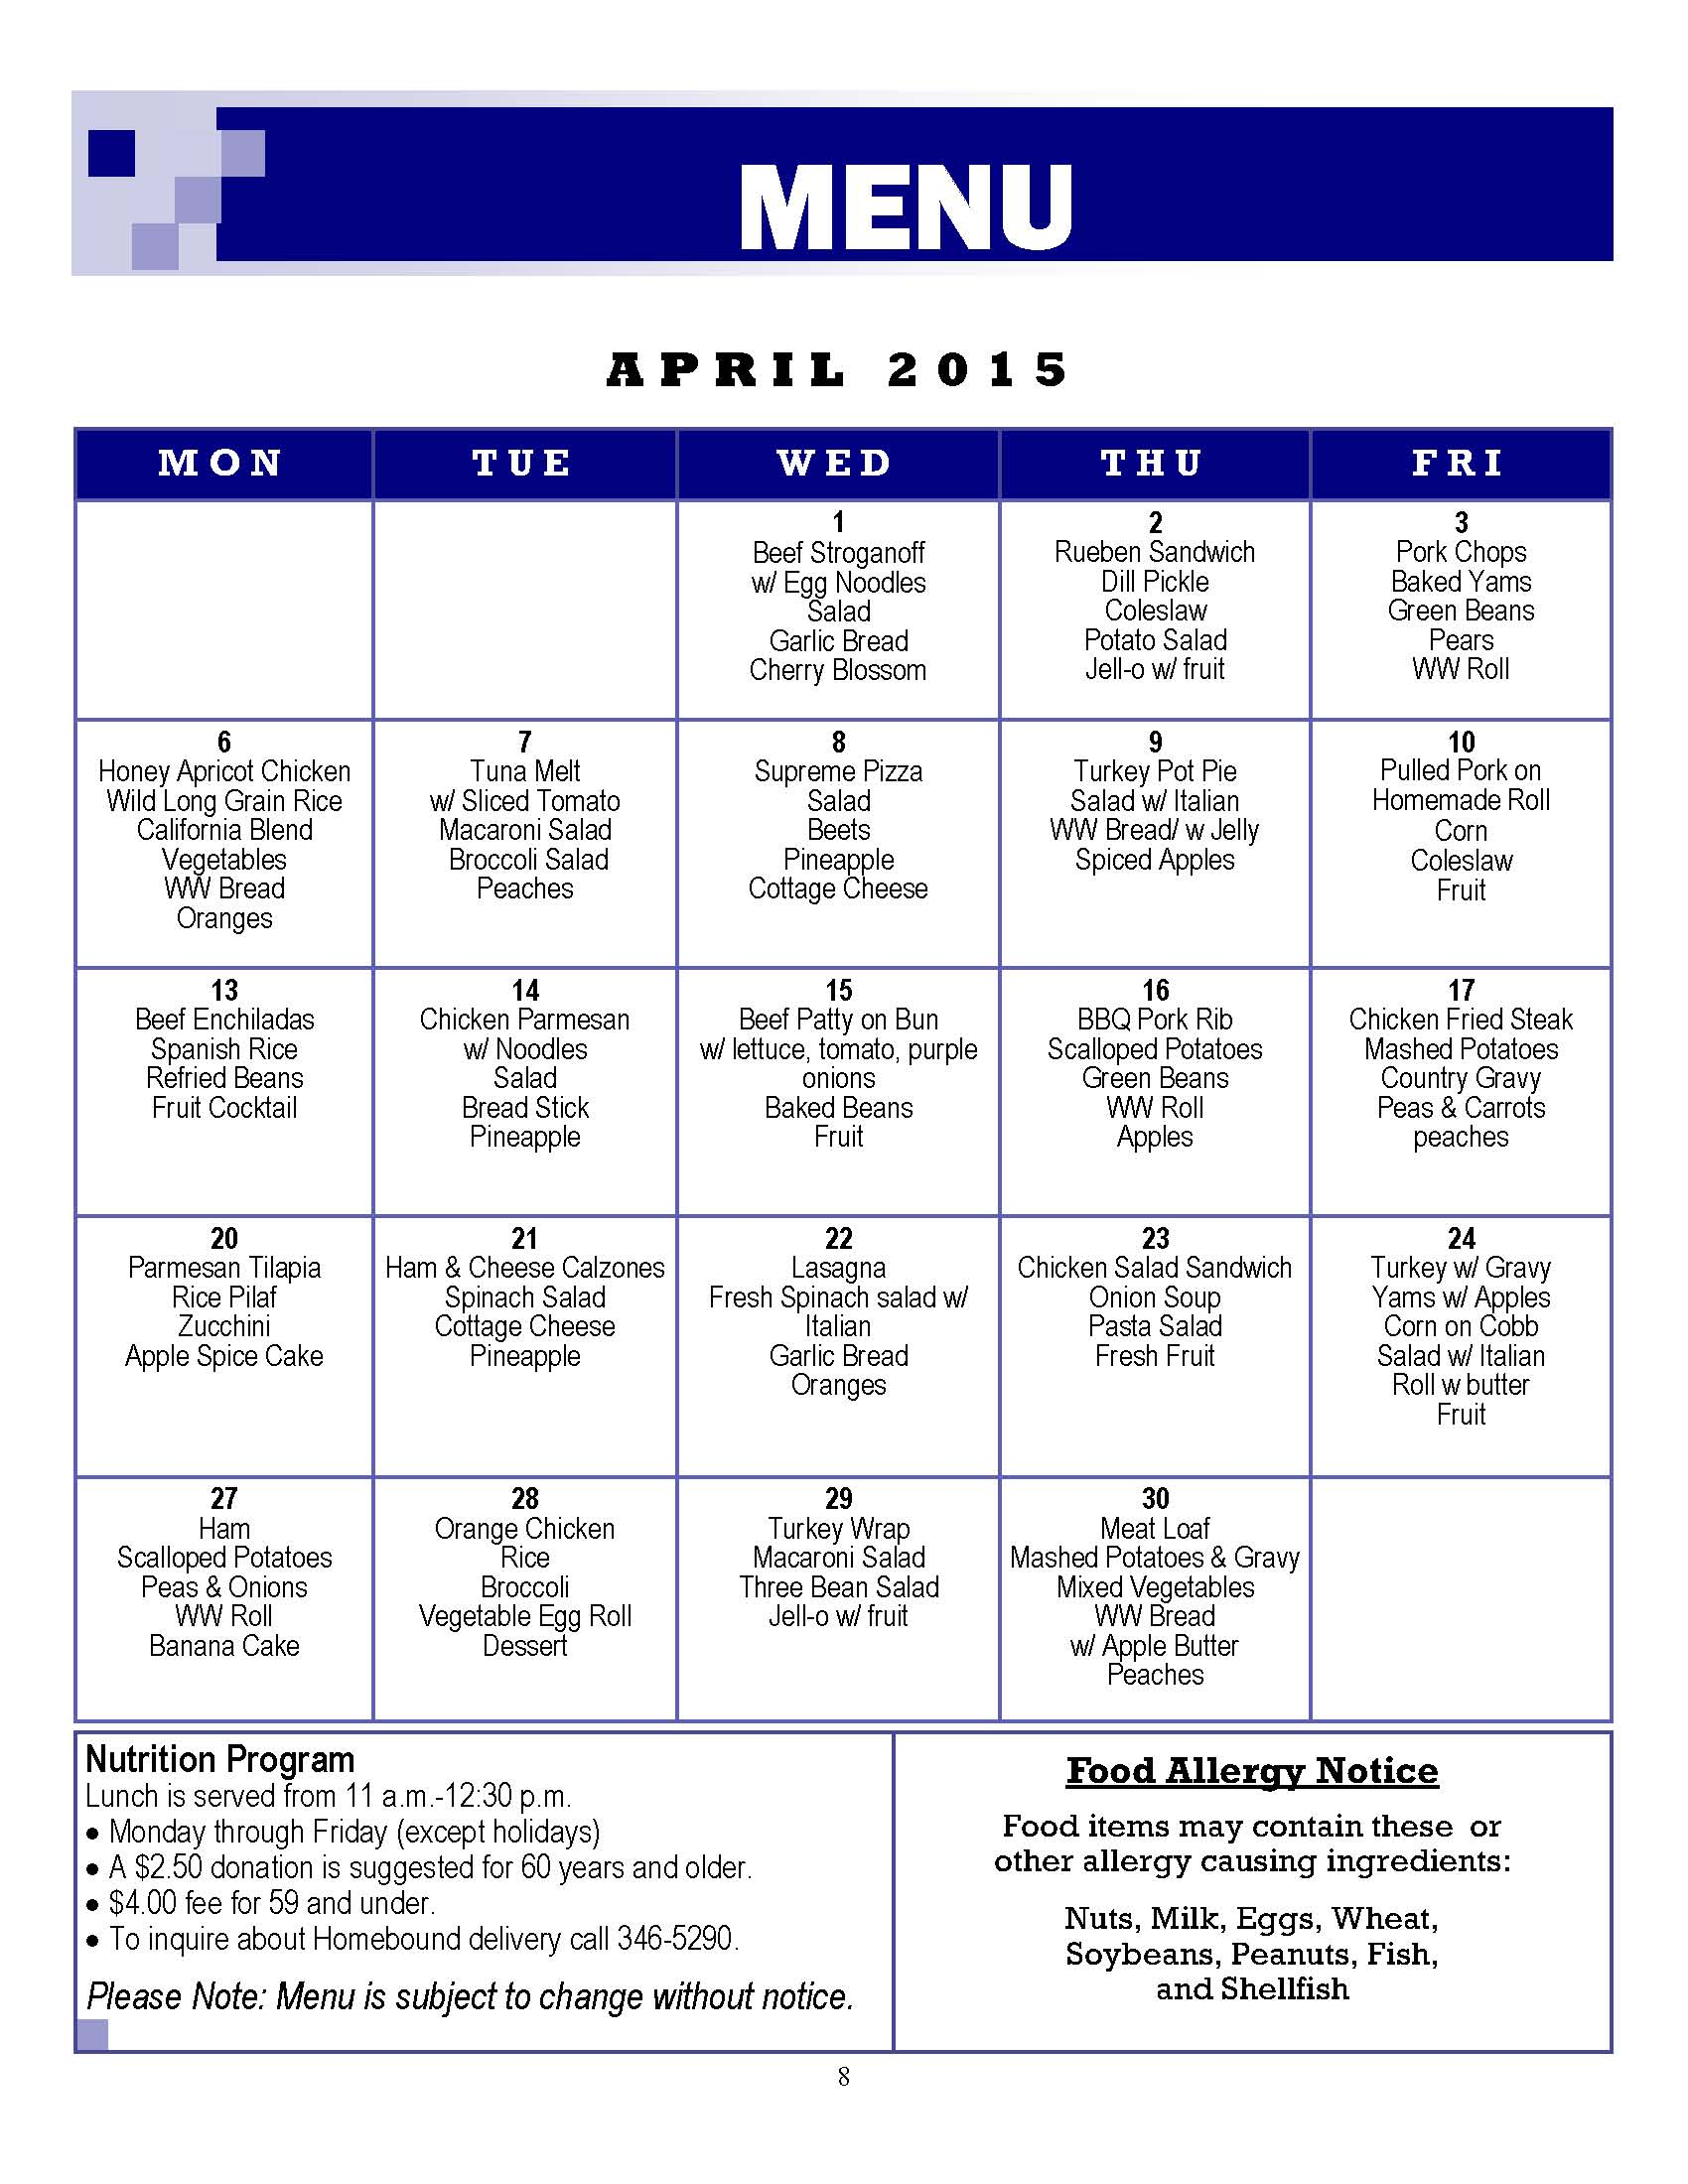 Senior Center Menu April 2015